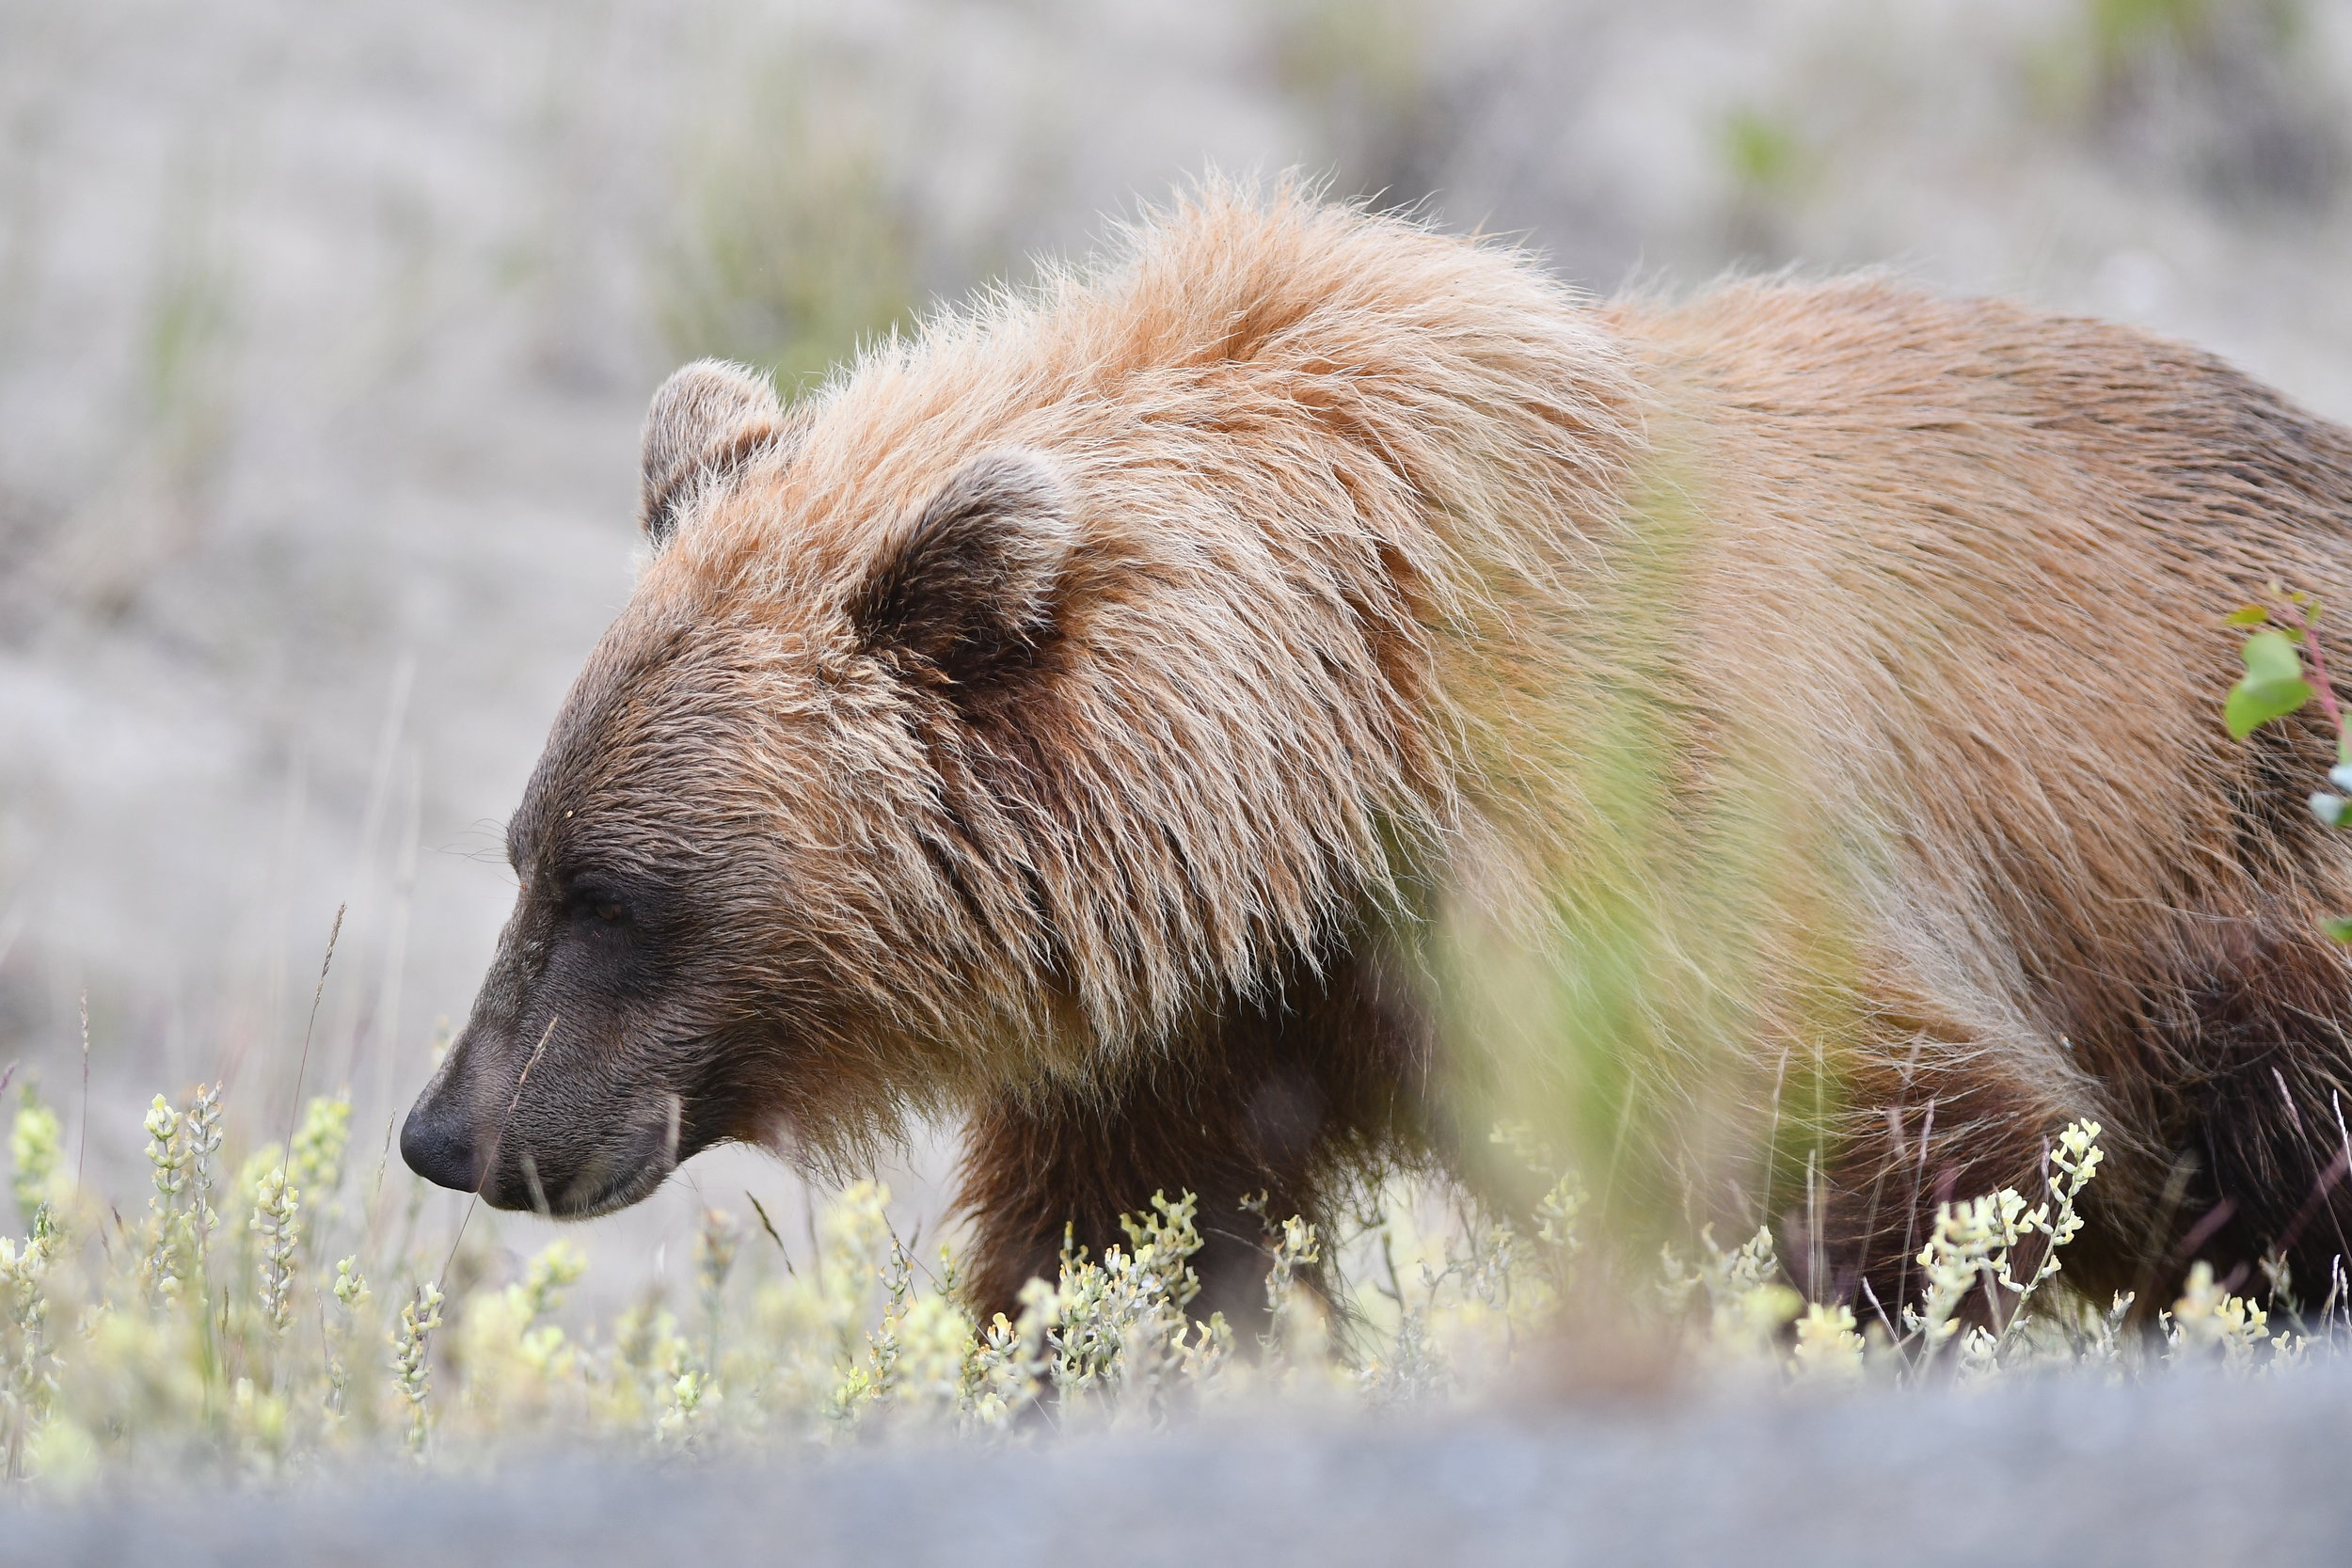 Grizzly in Northern British Columbia. Taken with a 300mm f/2.8 VR on a Nikon D800E